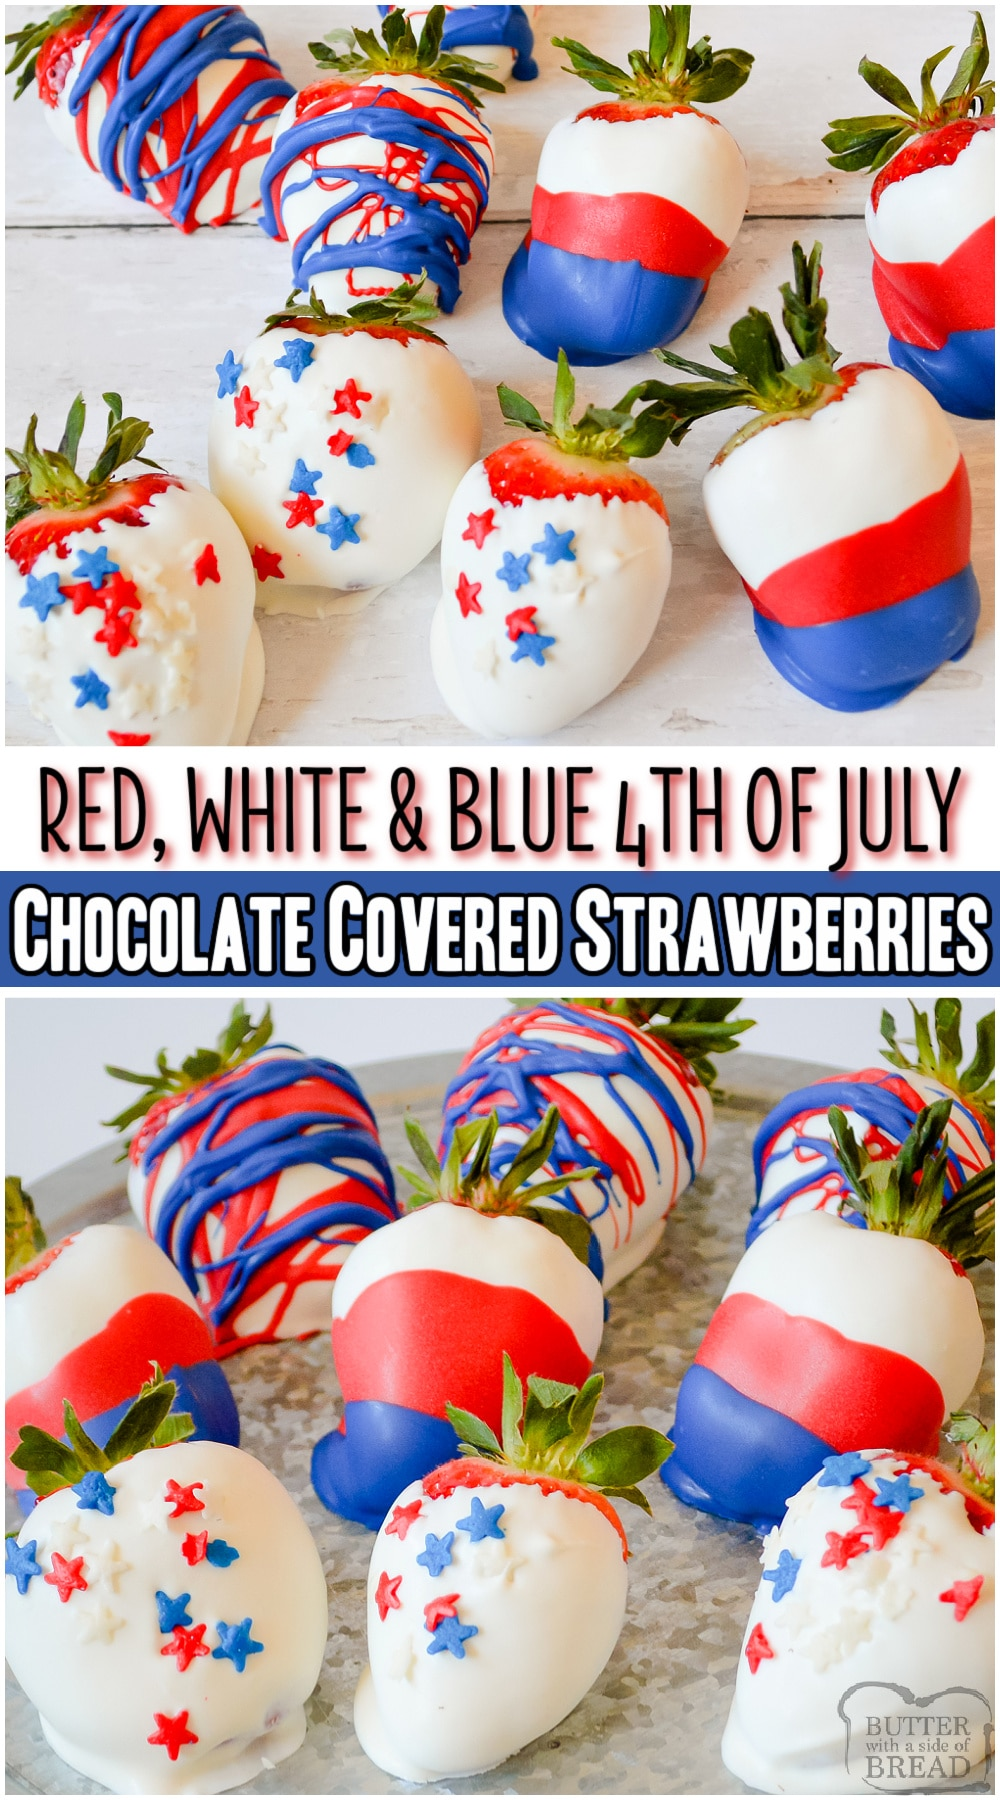 4TH OF JULY CHOCOLATE COVERED STRAWBERRIES are a fun patriotic dessert that's both festive & delicious! Fresh berries covered in red, white & blue chocolate and sprinkles. Simple instructions for how to make chocolate dipped strawberries included! #strawberries #4thofJuly #redwhiteblue #dessert #nobake #easyrecipe from BUTTER WITH A SIDE OF BREAD